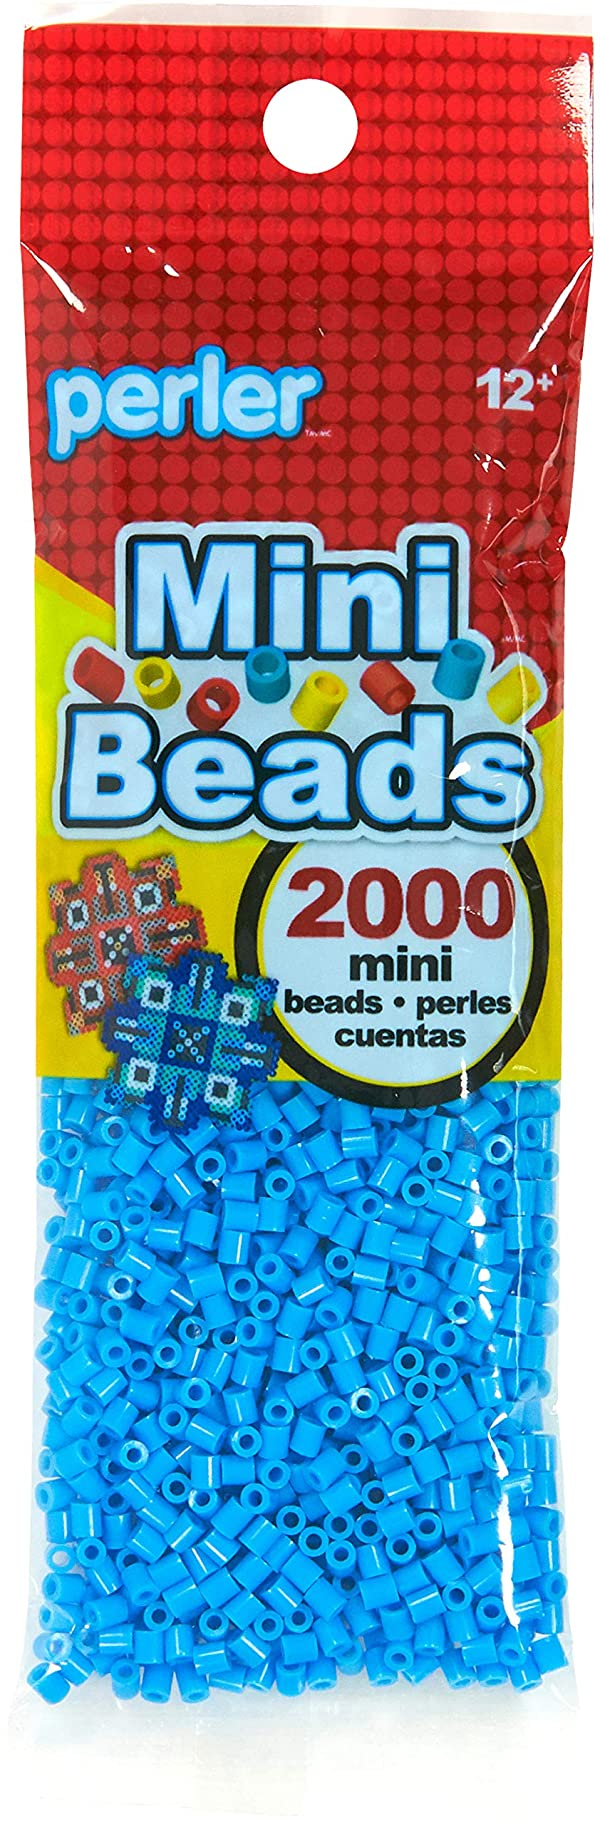 Perler Turquoise Blue Mini Beads for Kids Crafts, 2000 pcs (Color: Turquoise)